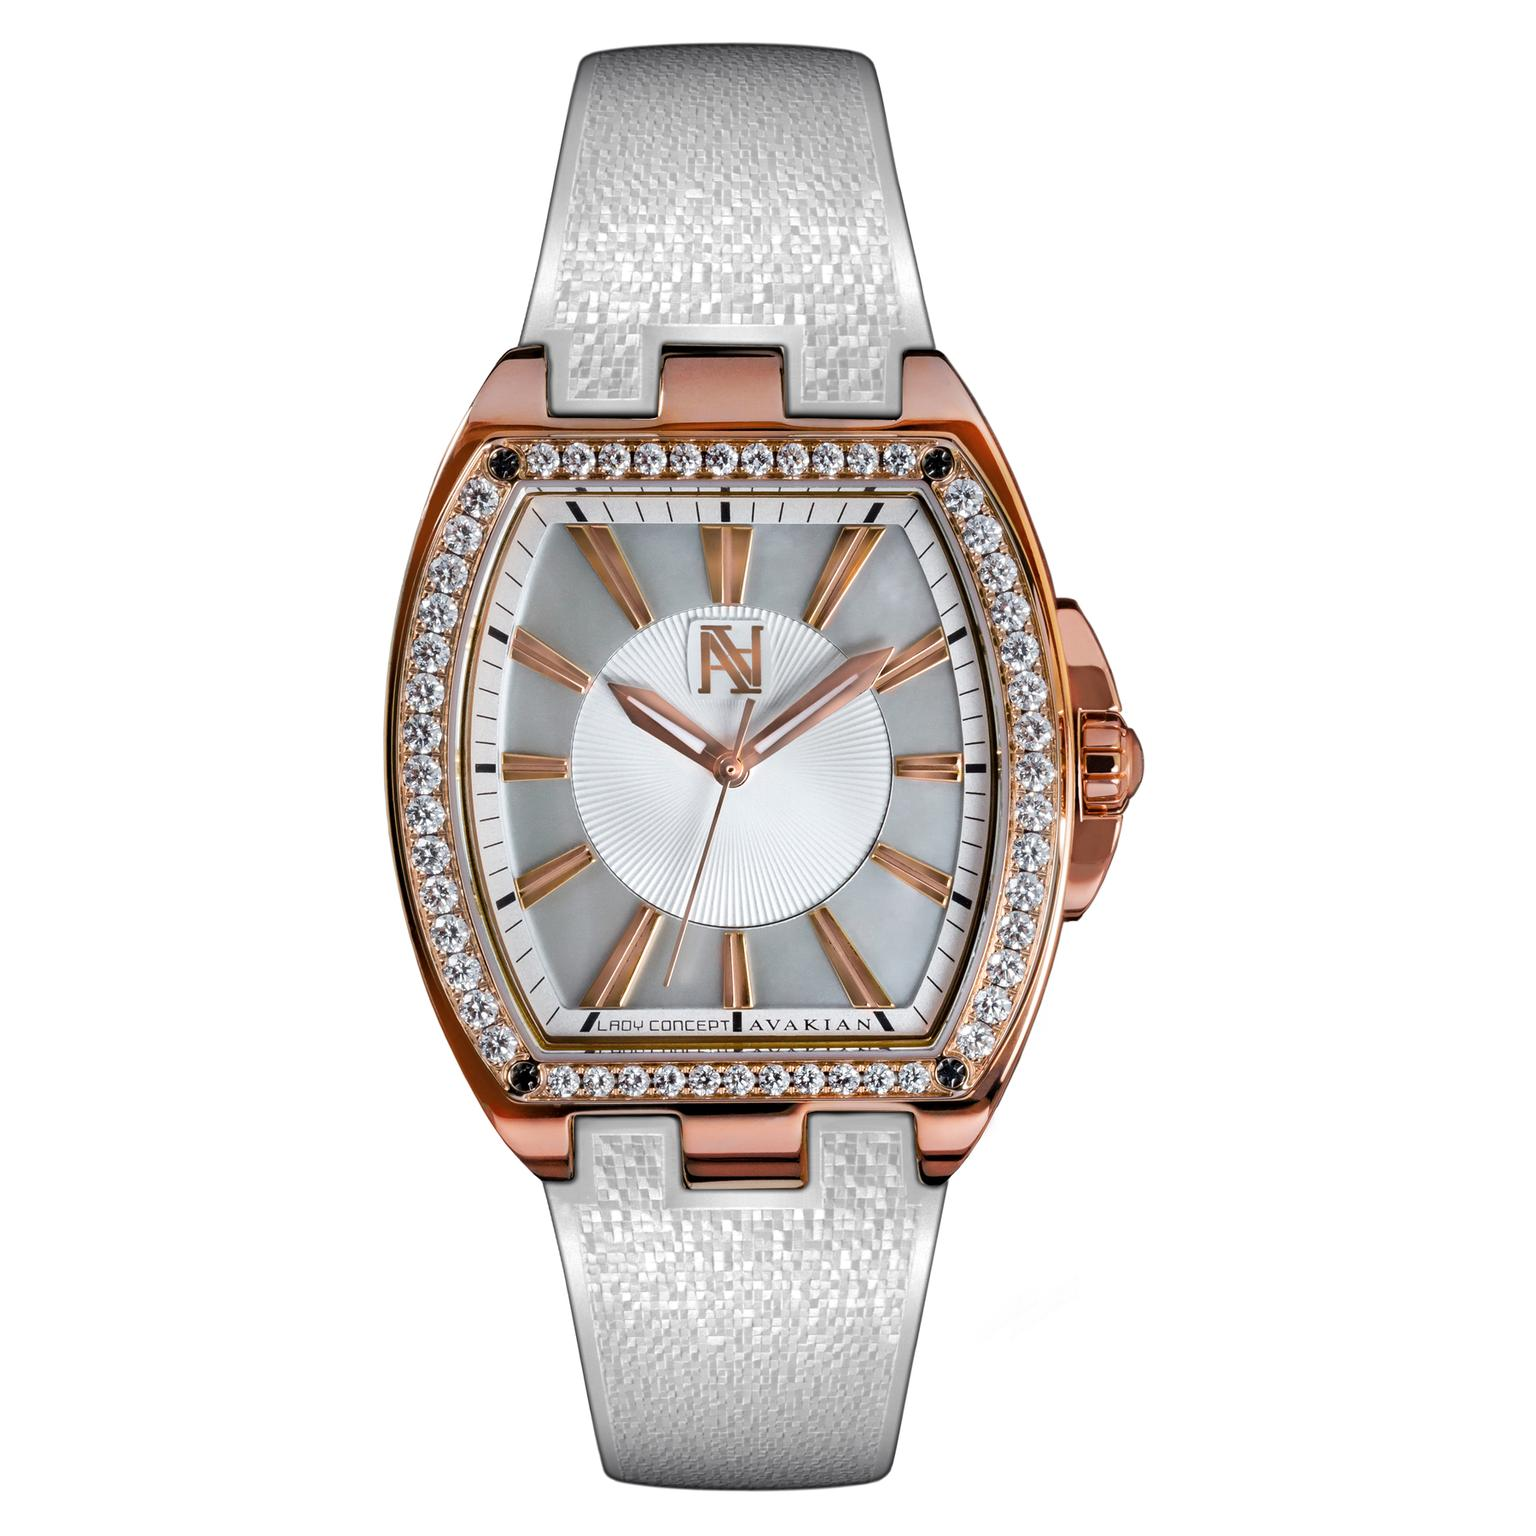 Avakian Lady Concept White watch with diamond bezel